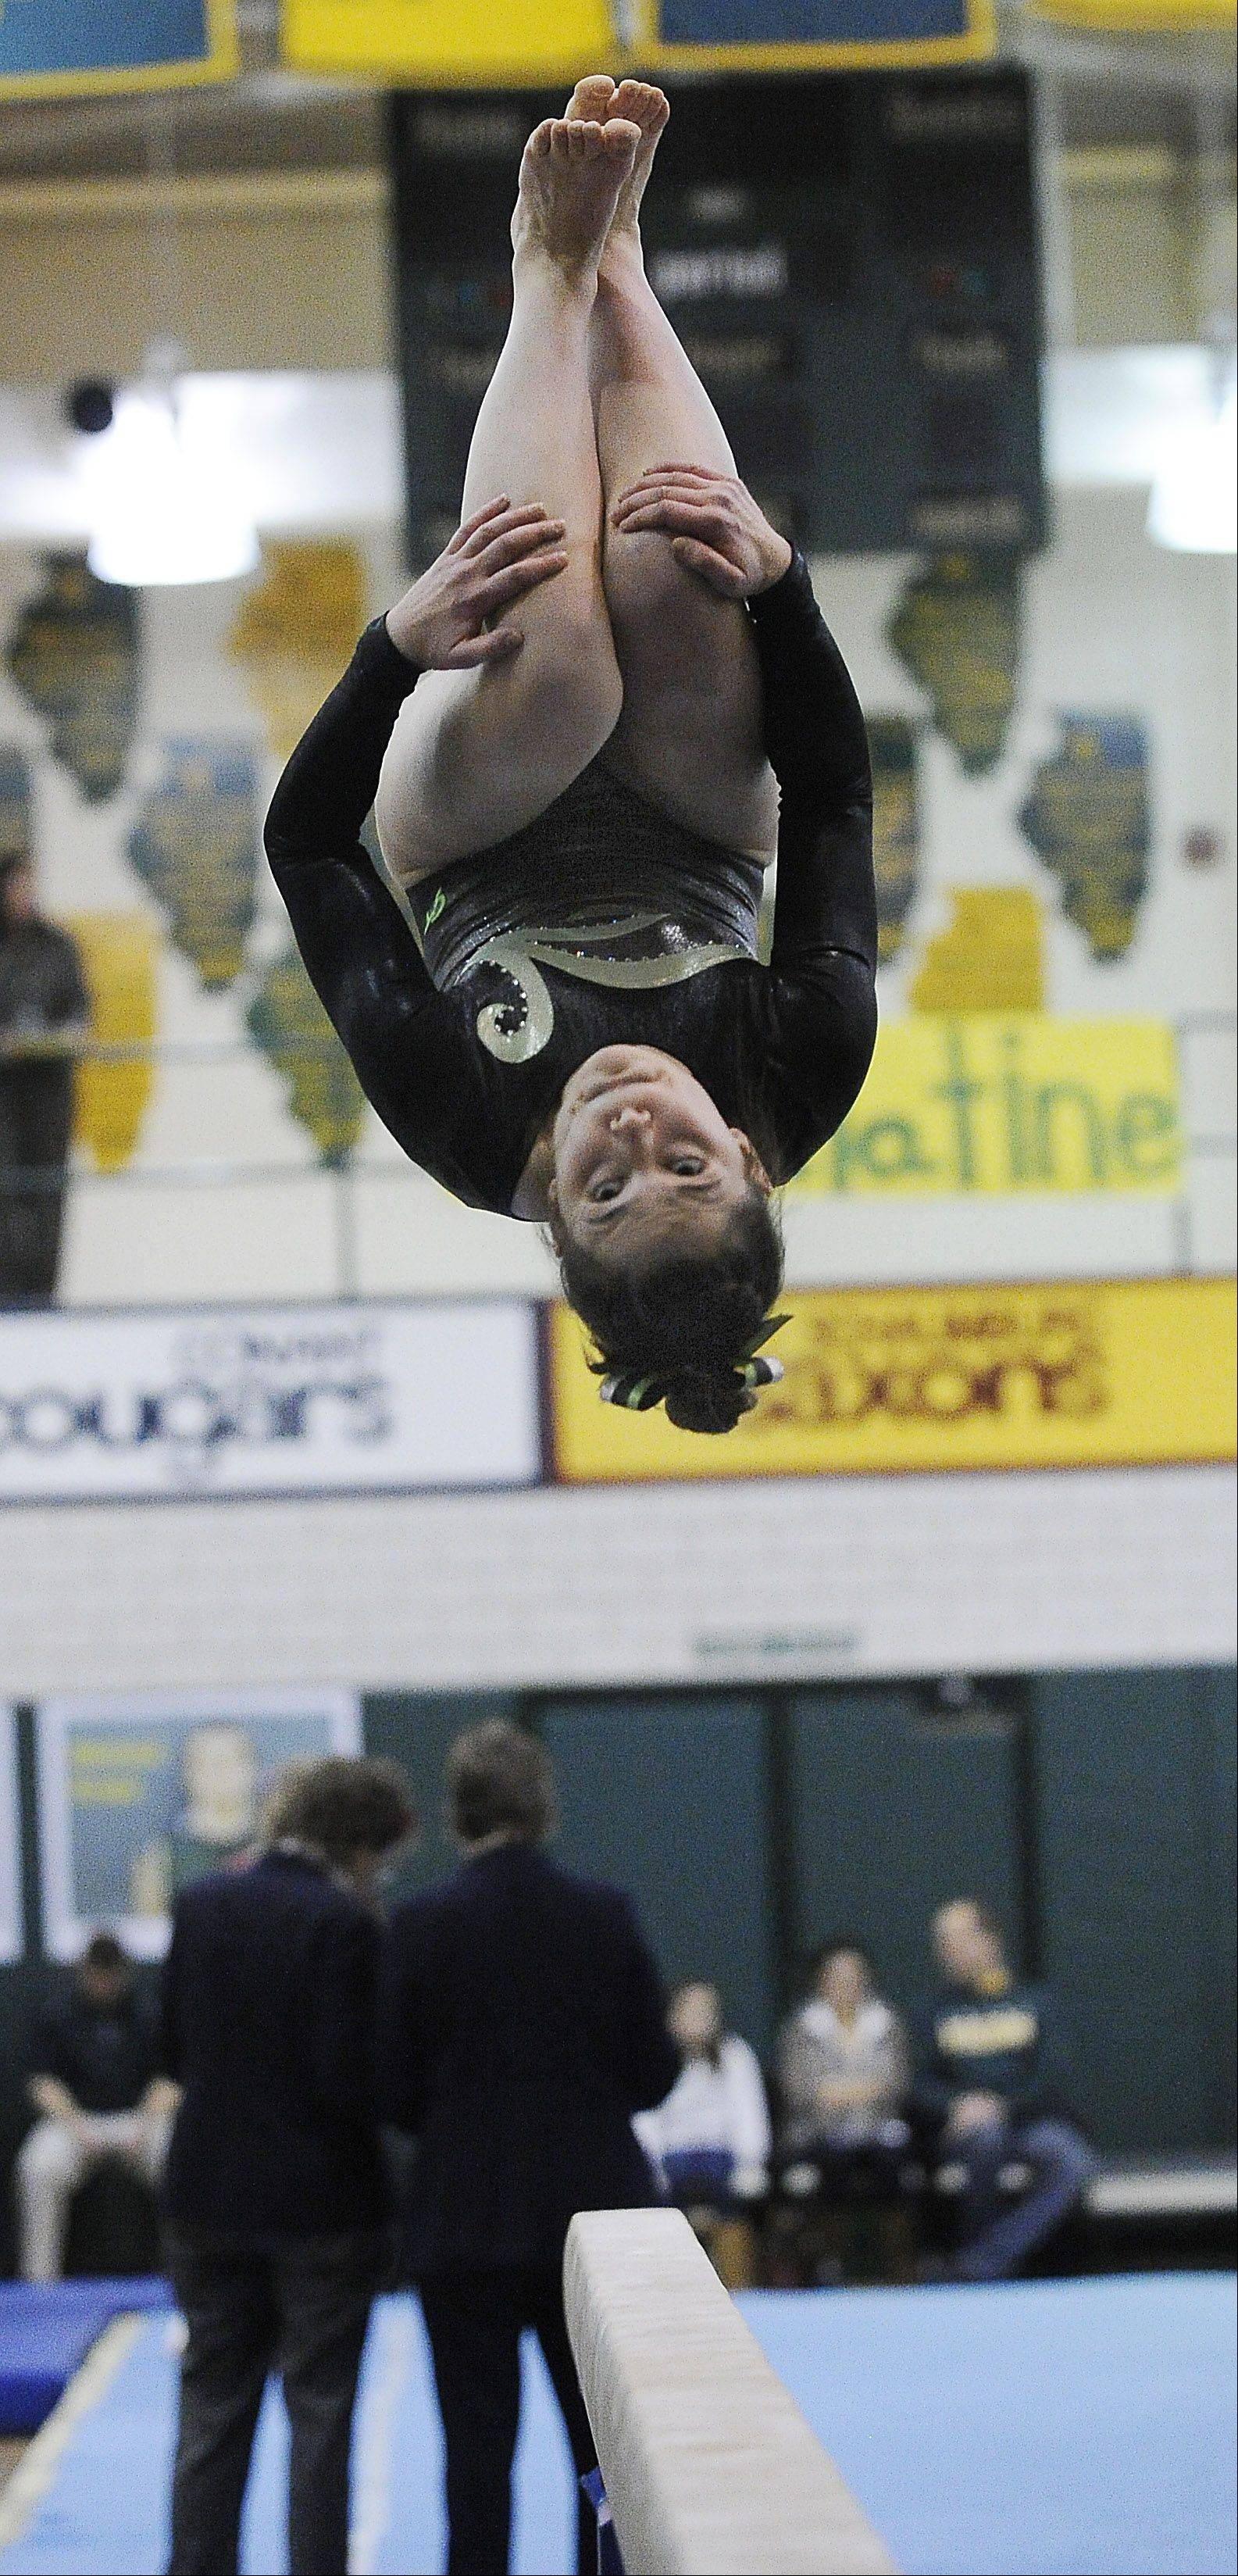 Elk Grove's Amelia Rafferty eyes the beam for her landing after her flip during sectional action Monday at Fremd.